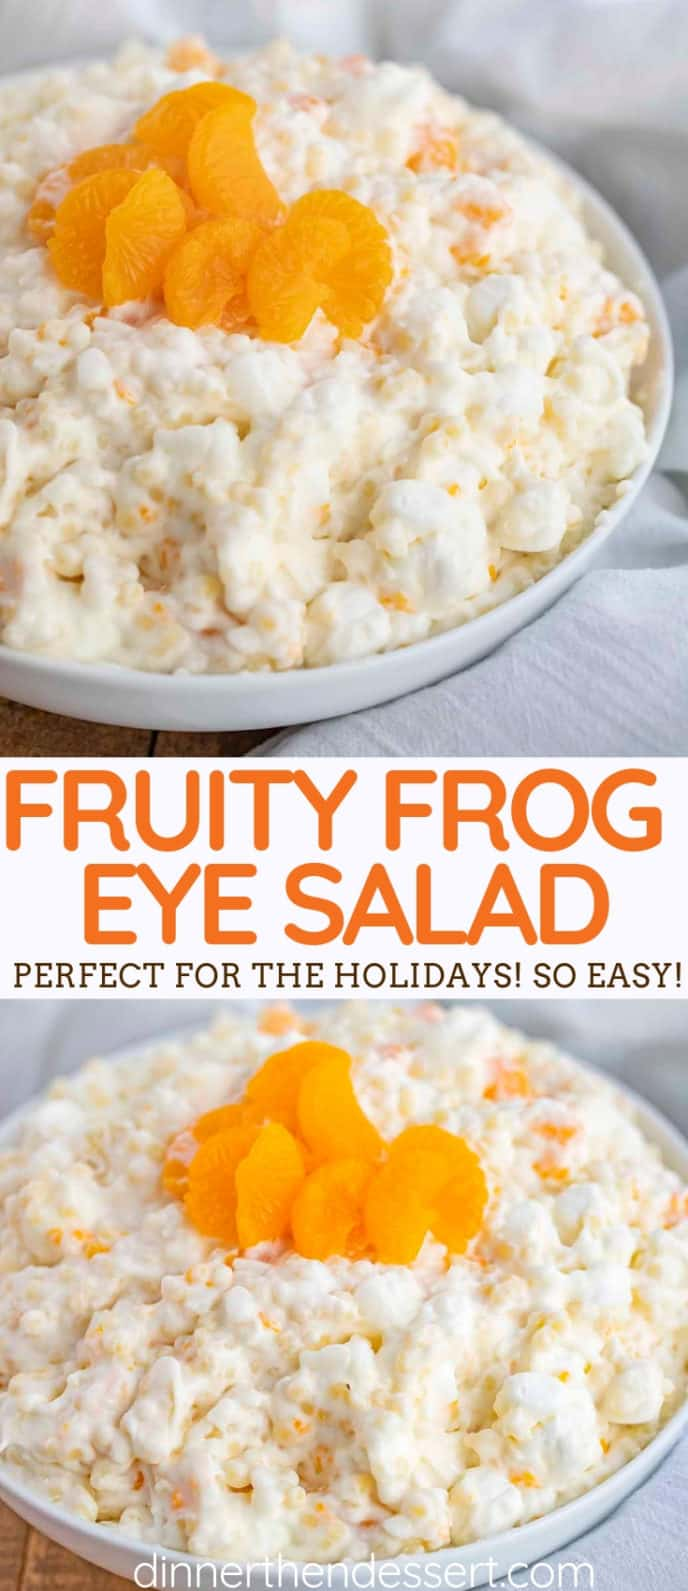 Creamy Frog Eye Salad with Mandarin Oranges and Pineapple and Marshmallows